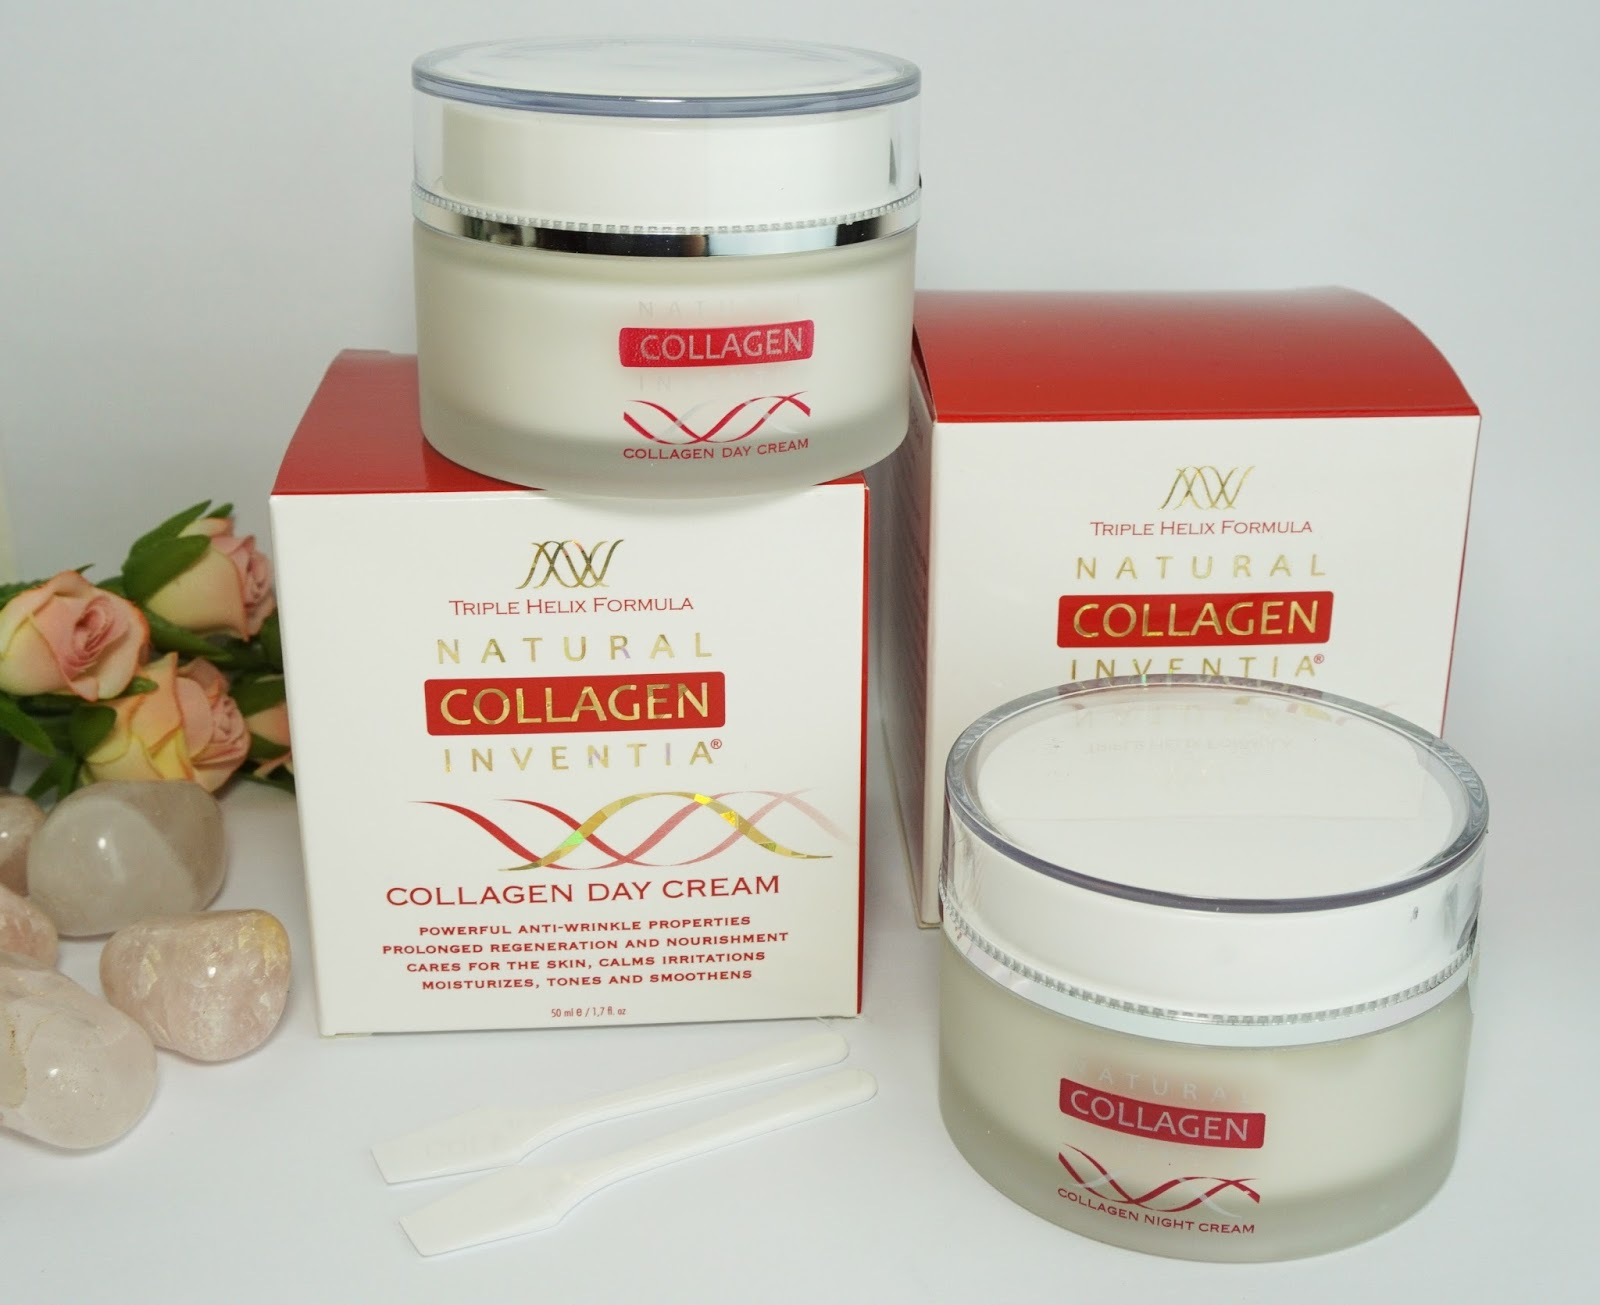 Natural Collagen Inventia - Tages- und Nachtcreme